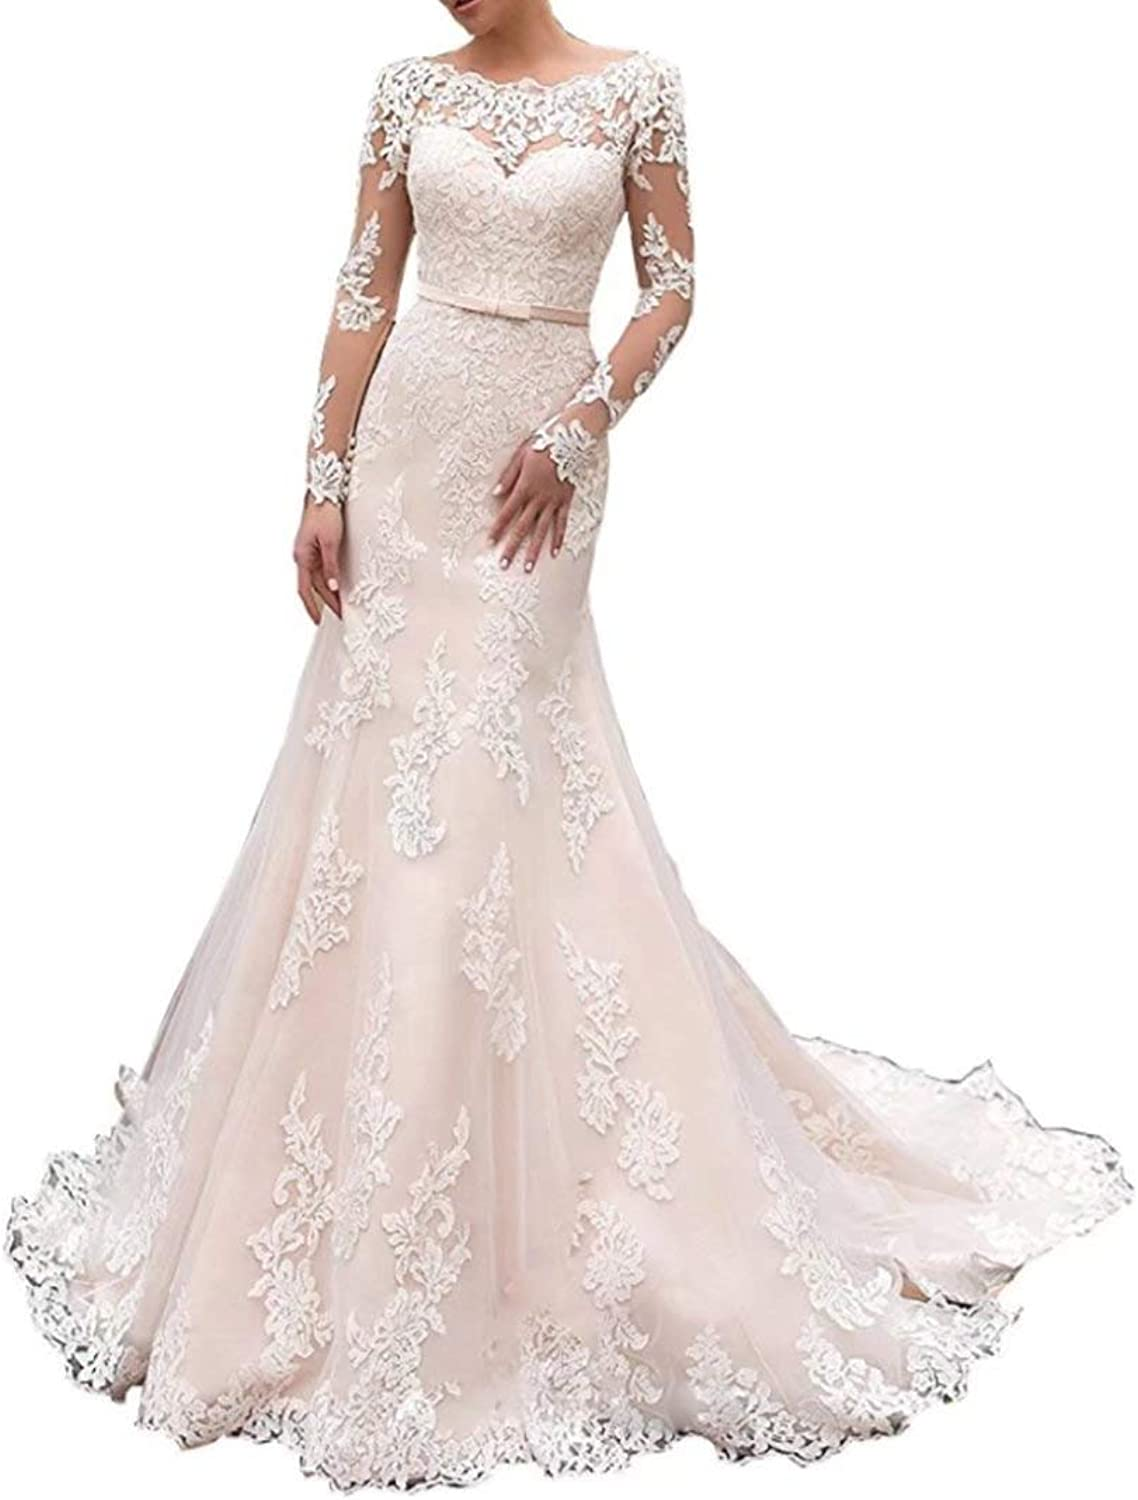 Yilian Lace Mermaid Sexy Slim Illusion Long Sleeves Appliques Backless Wedding Dresses for Bridal Gowns